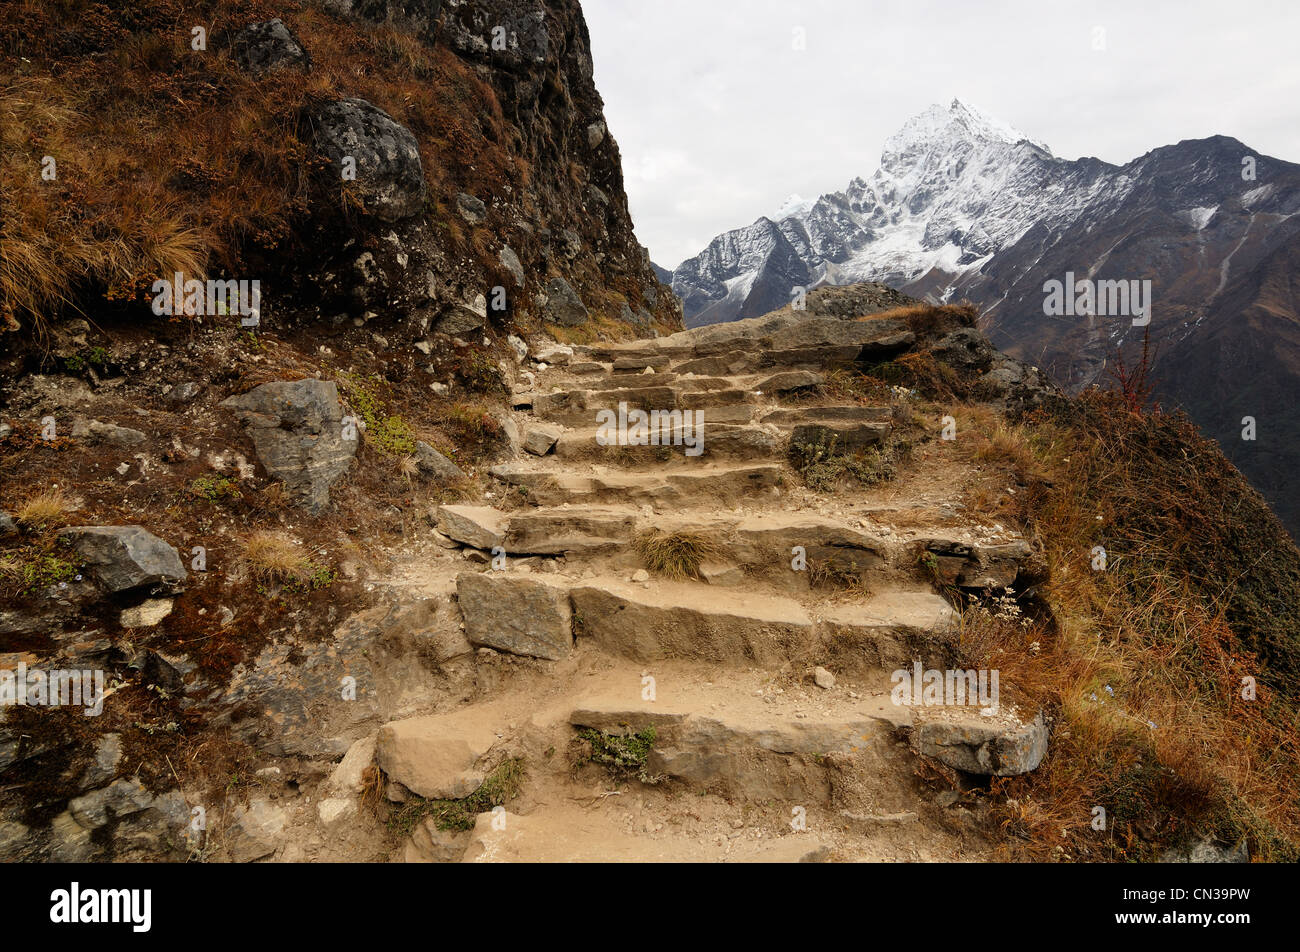 Steps in the Himalayas on way from Namche Bazaar to Khumjung, Nepal - Stock Image